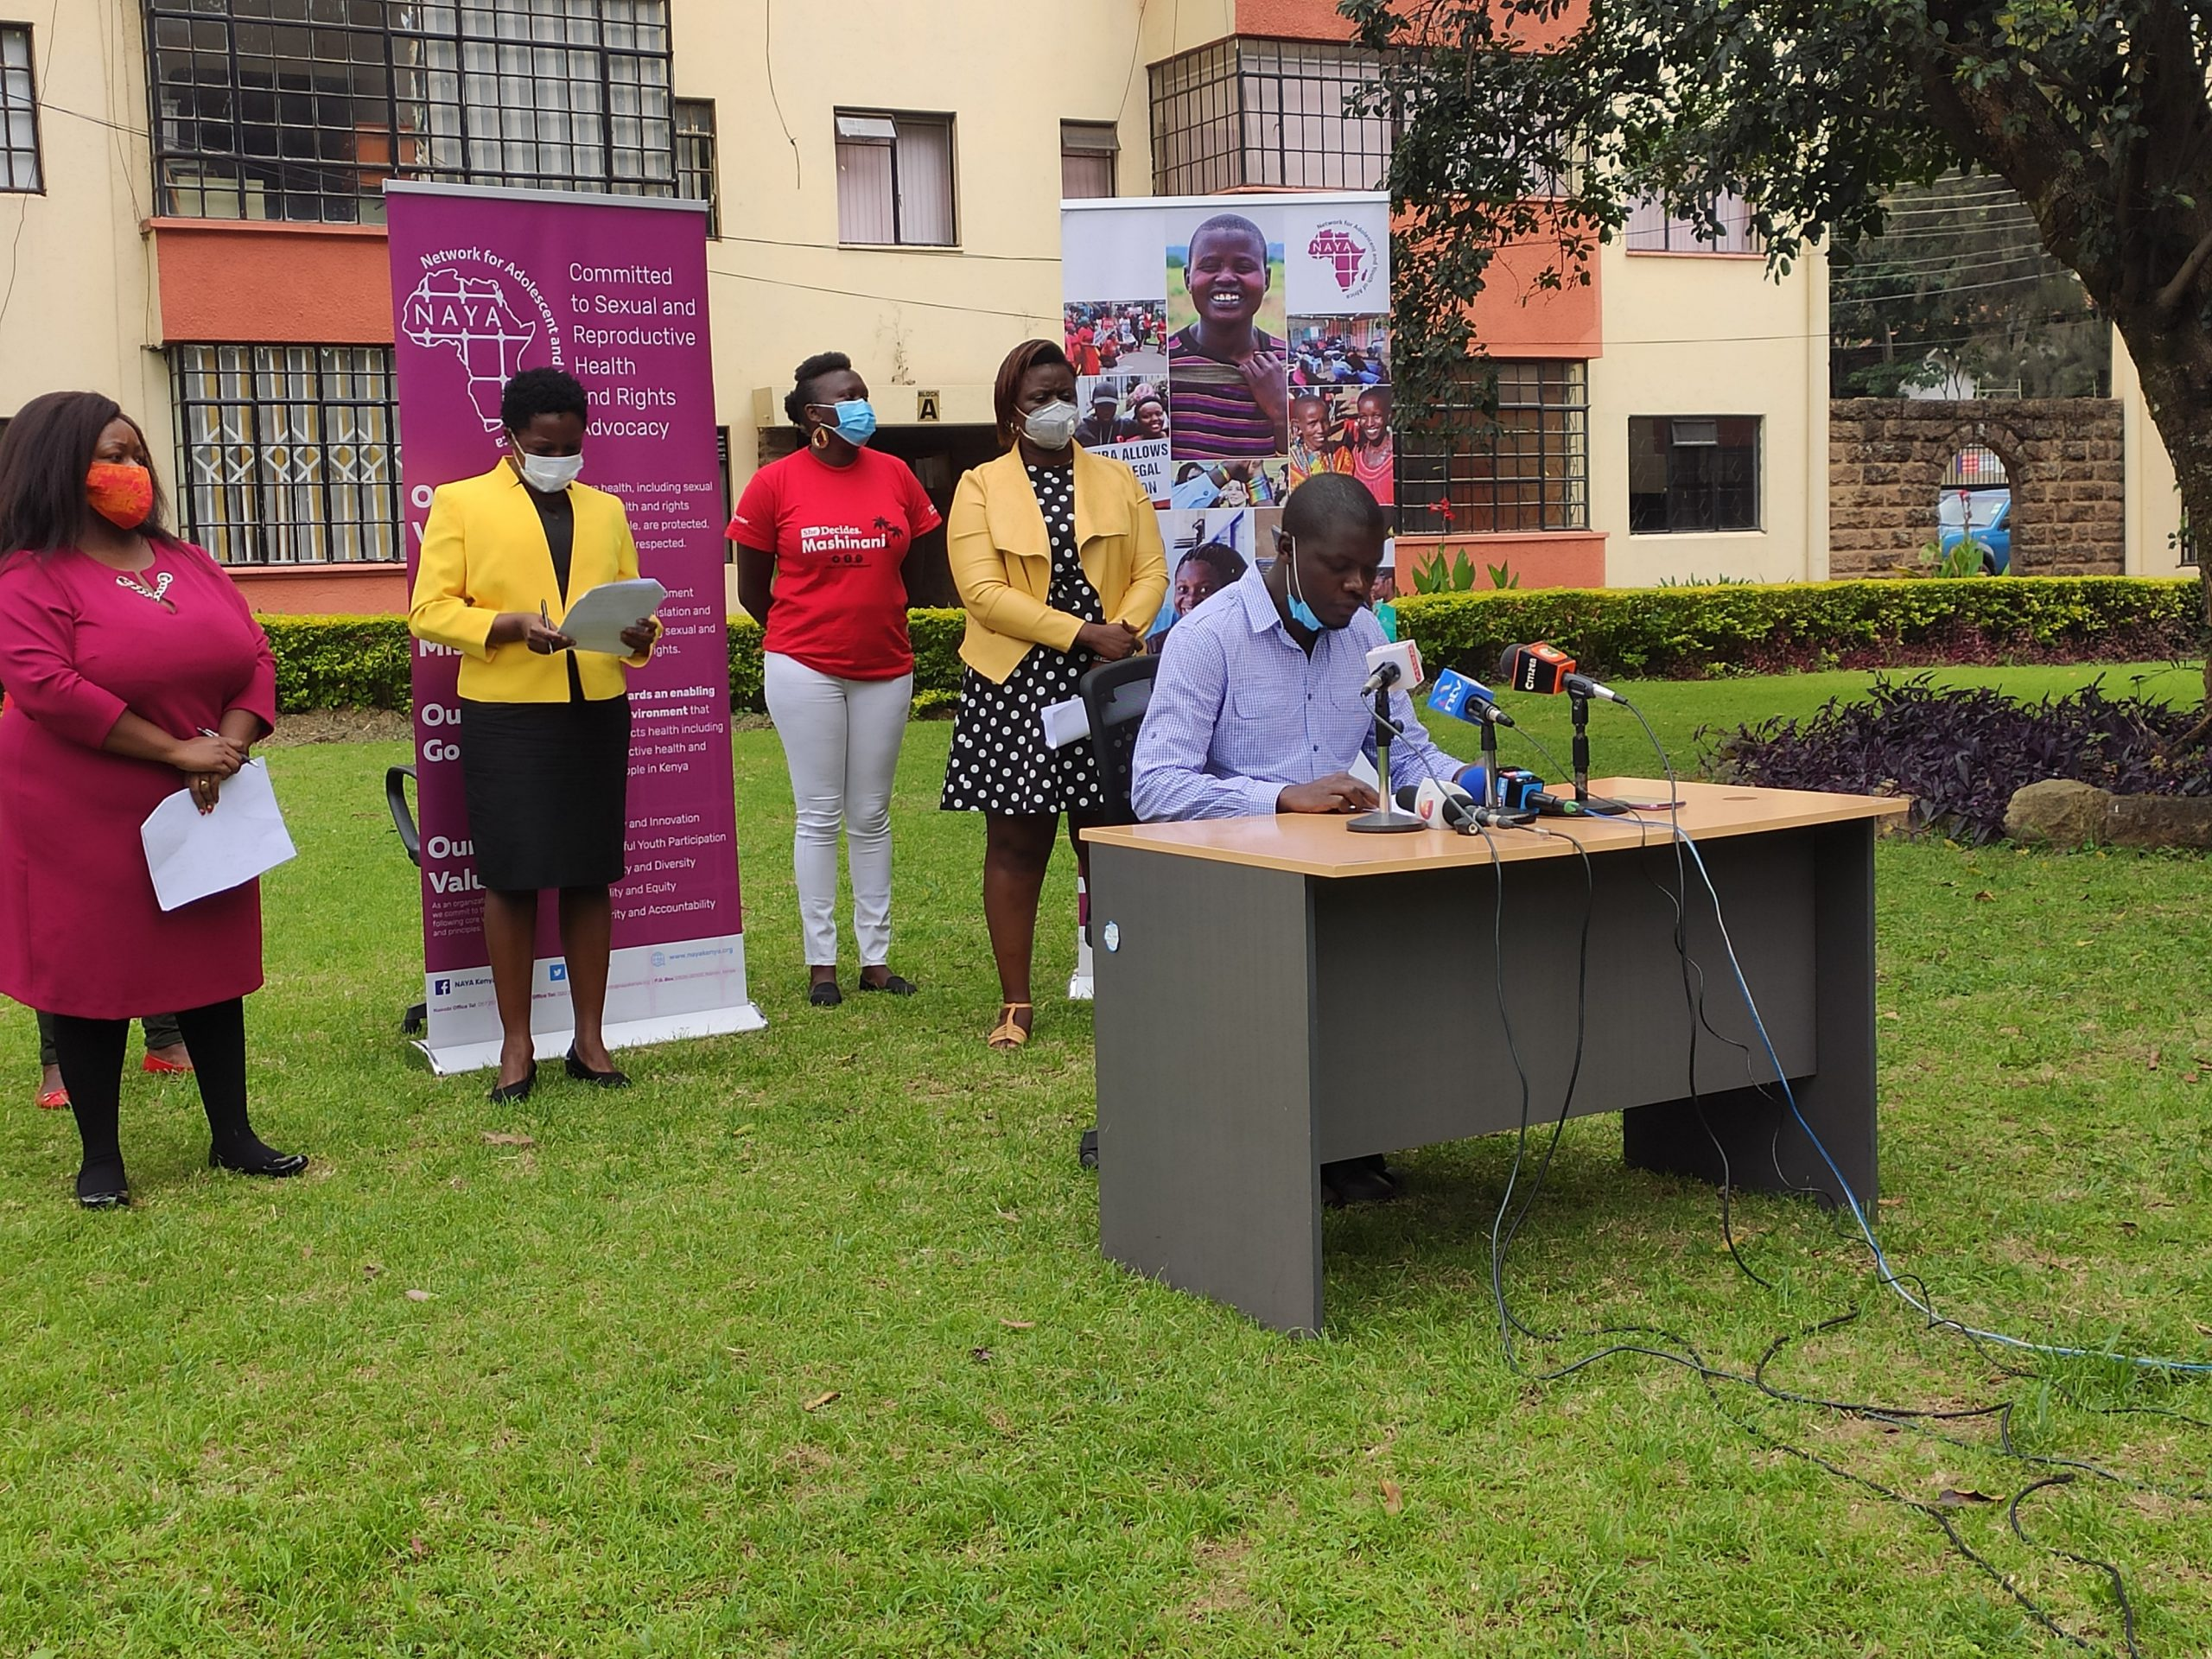 JOINT STATEMENT: Operationalize the Bill of Rights and Facilitate Access to Sexual and Reproductive Health and Rights